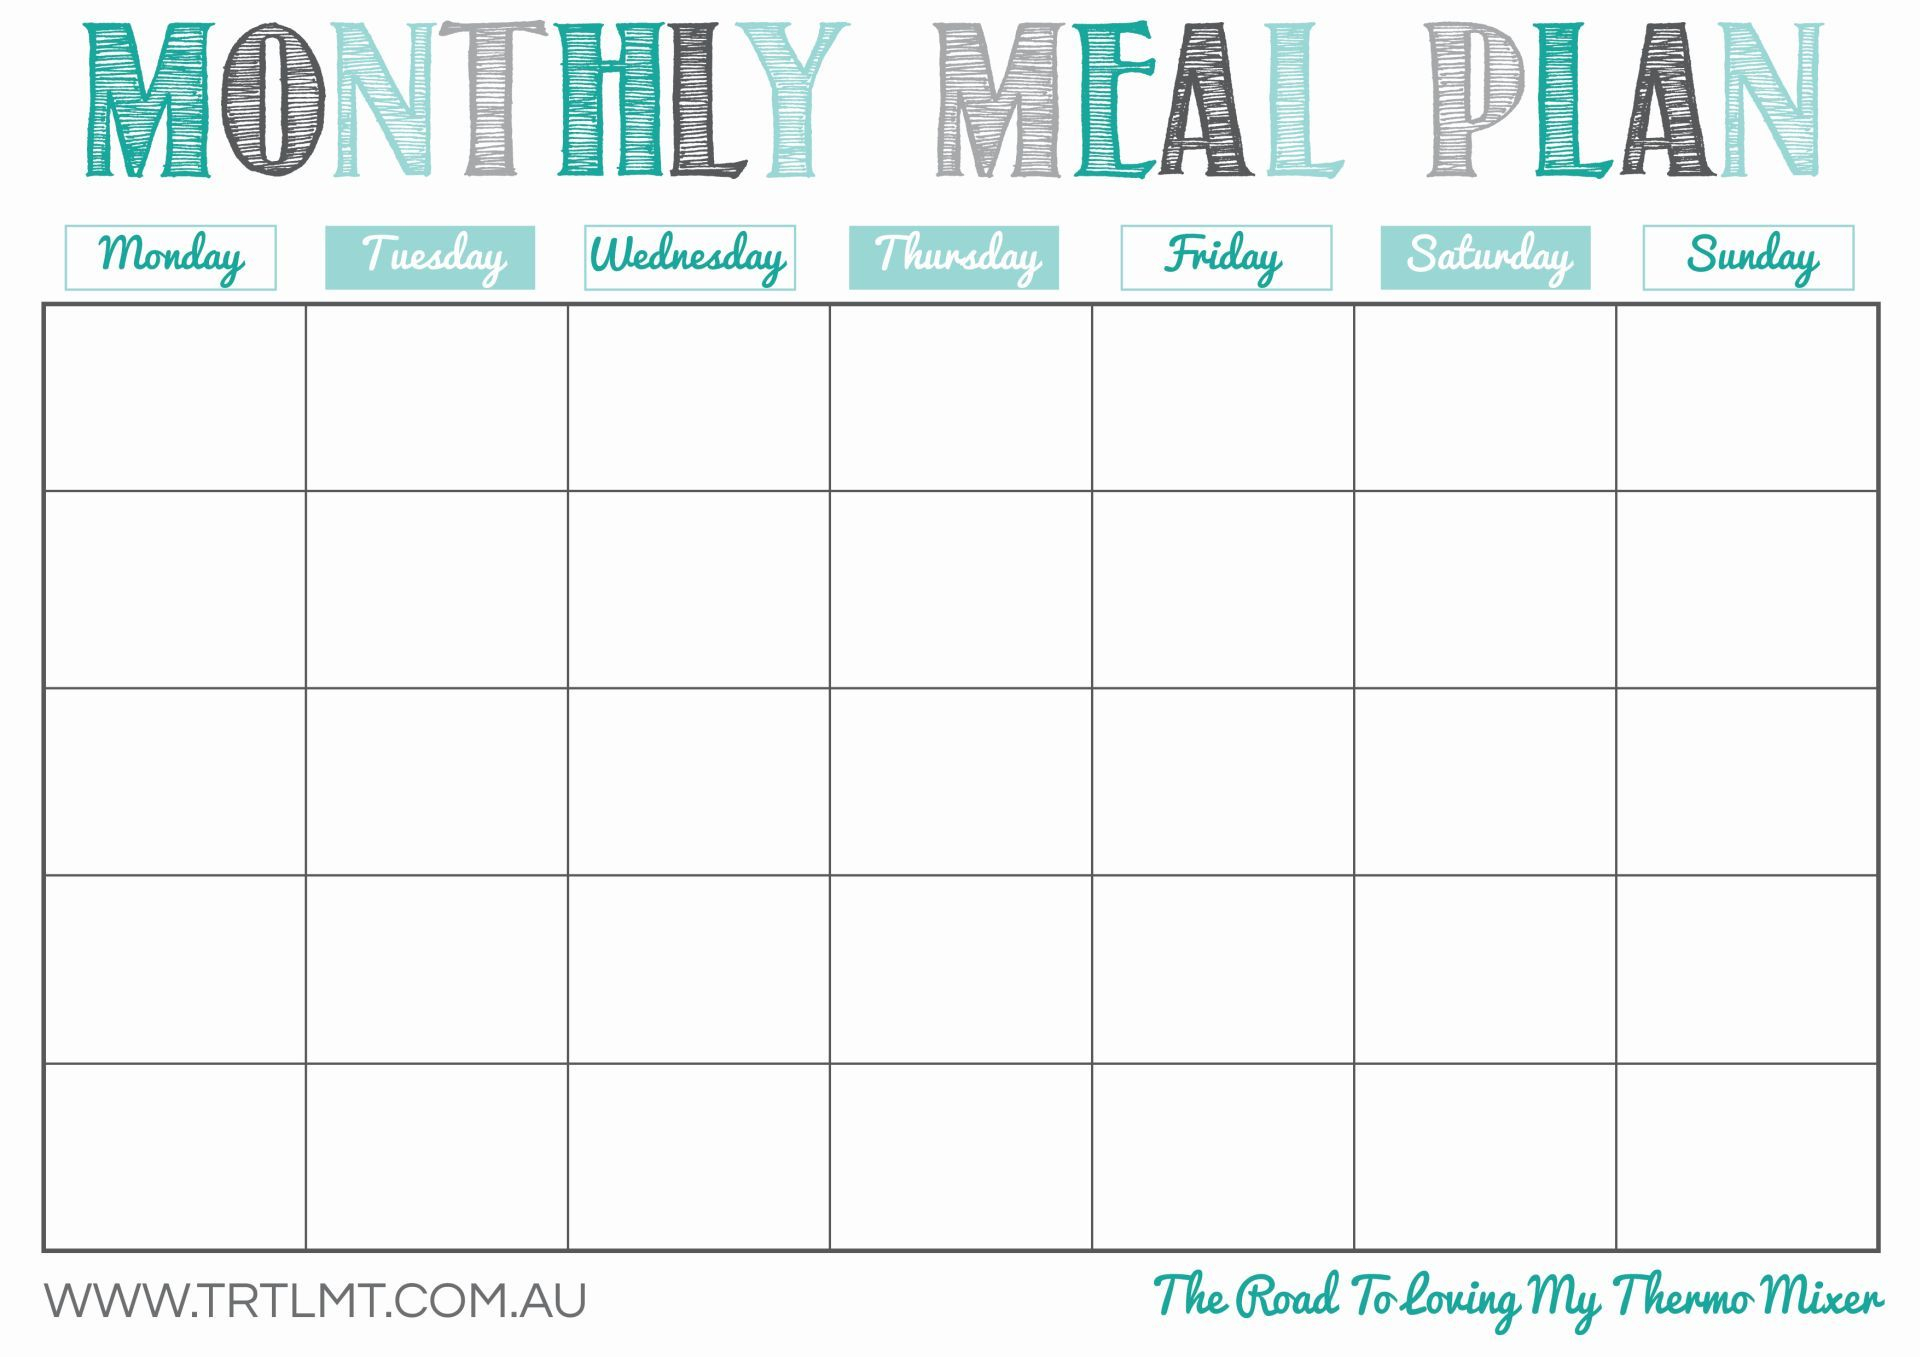 Printable Monthly Meal Planner   Organization In 2019   Meal Planner - Free Printable Monthly Meal Planner